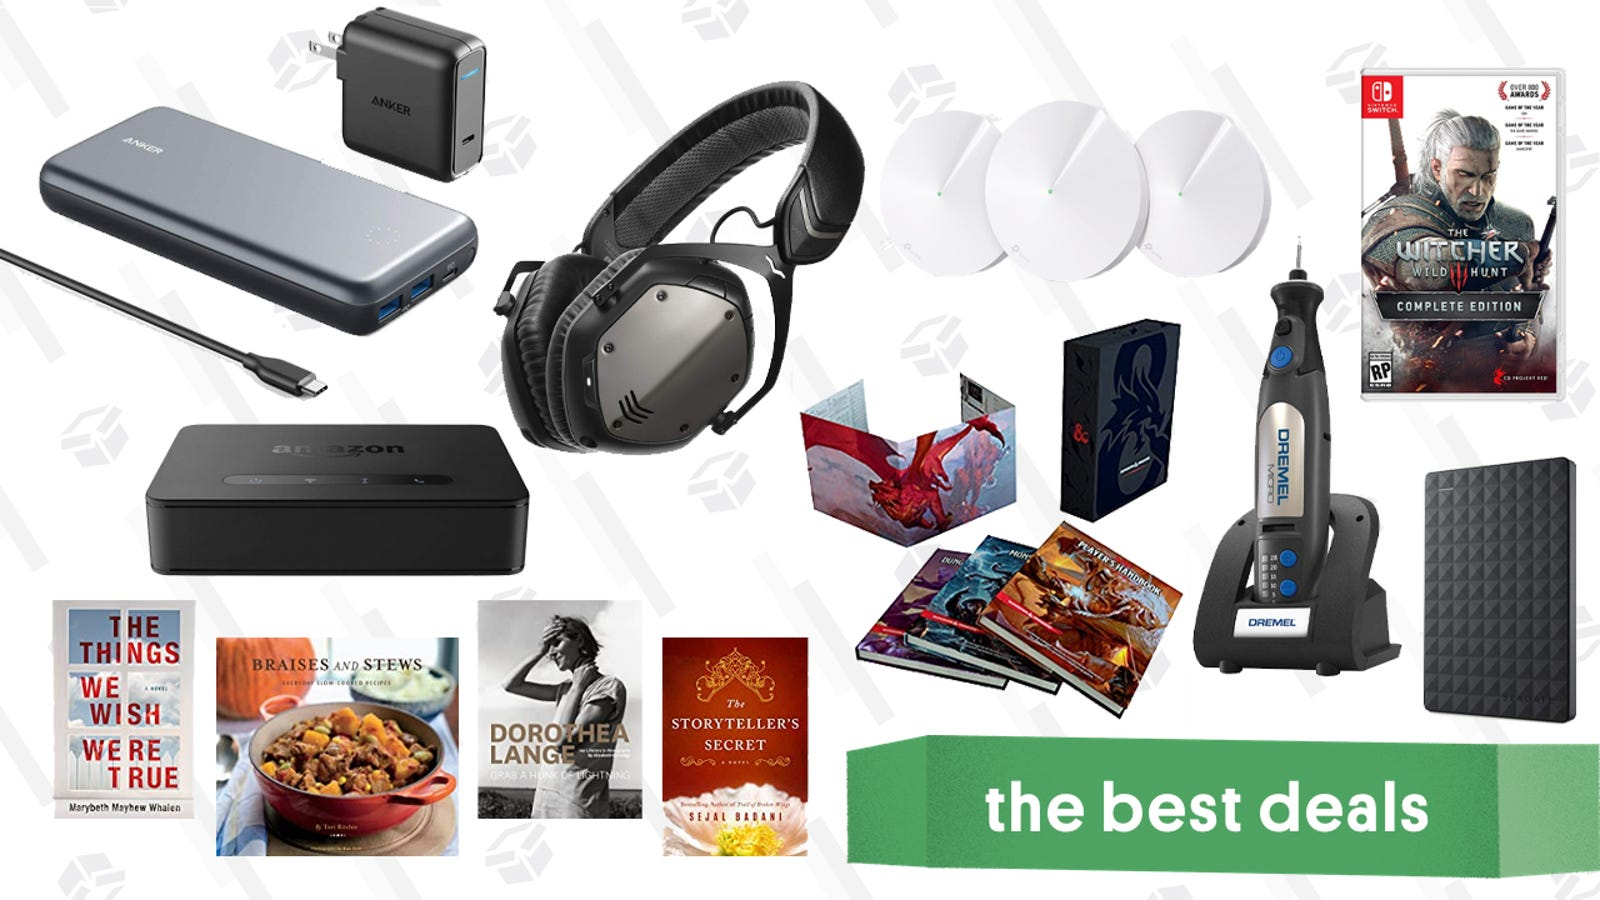 Tuesday's Best Deals: V-Moda Headphones, Kindle eBooks, TP-Link Mesh Routers, and More